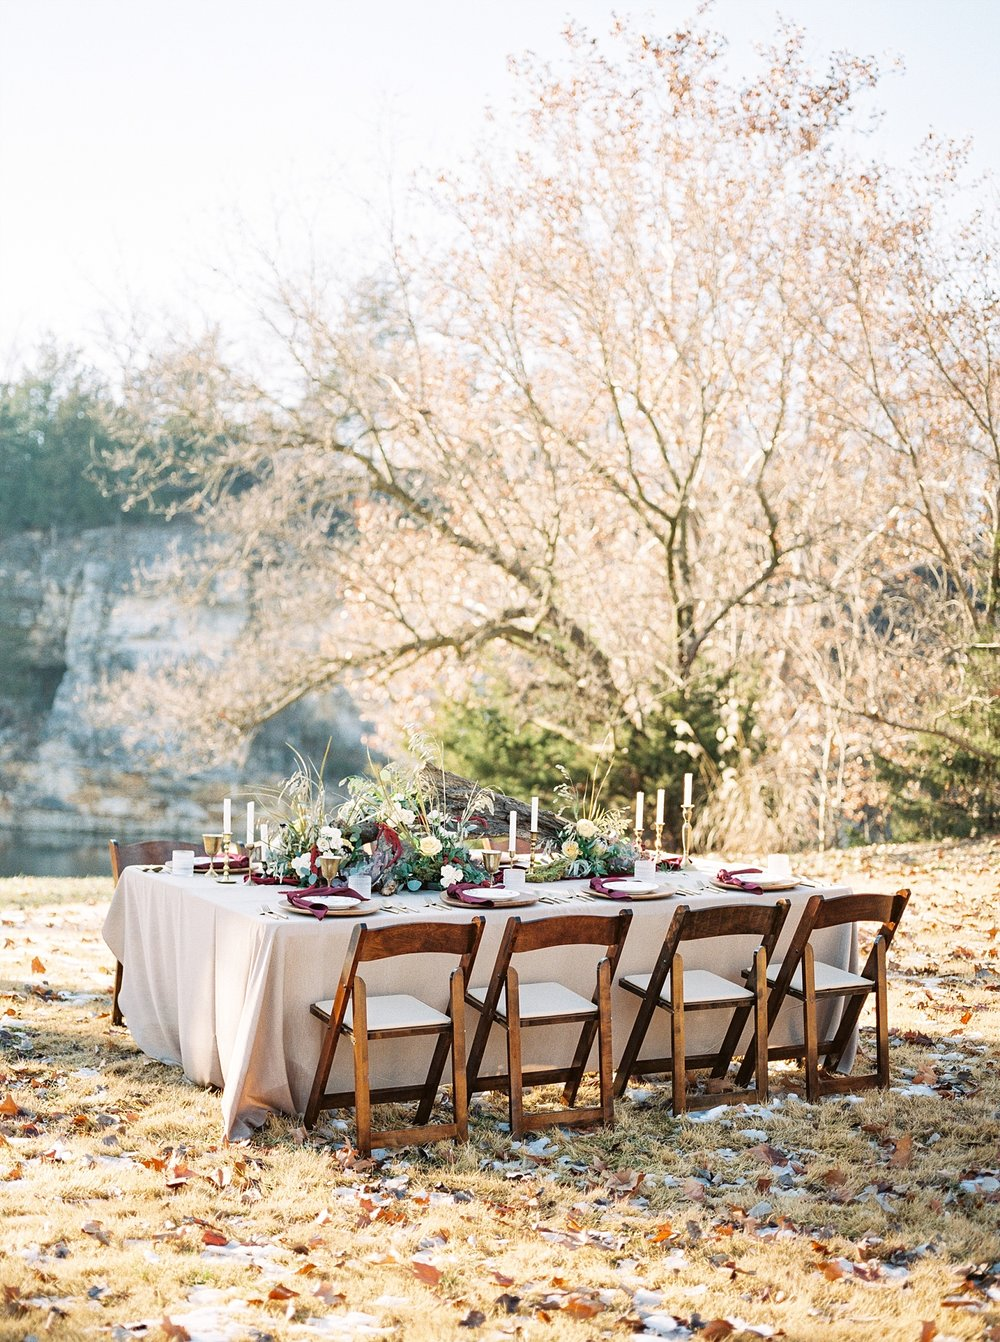 Snowy Winter Wedding at Wildcliff Events Lake With Earthy Jewel Tones and Organic Refined Style by Kelsi Kliethermes Photography Kansas City Missouri Wedding Photographer_0154.jpg